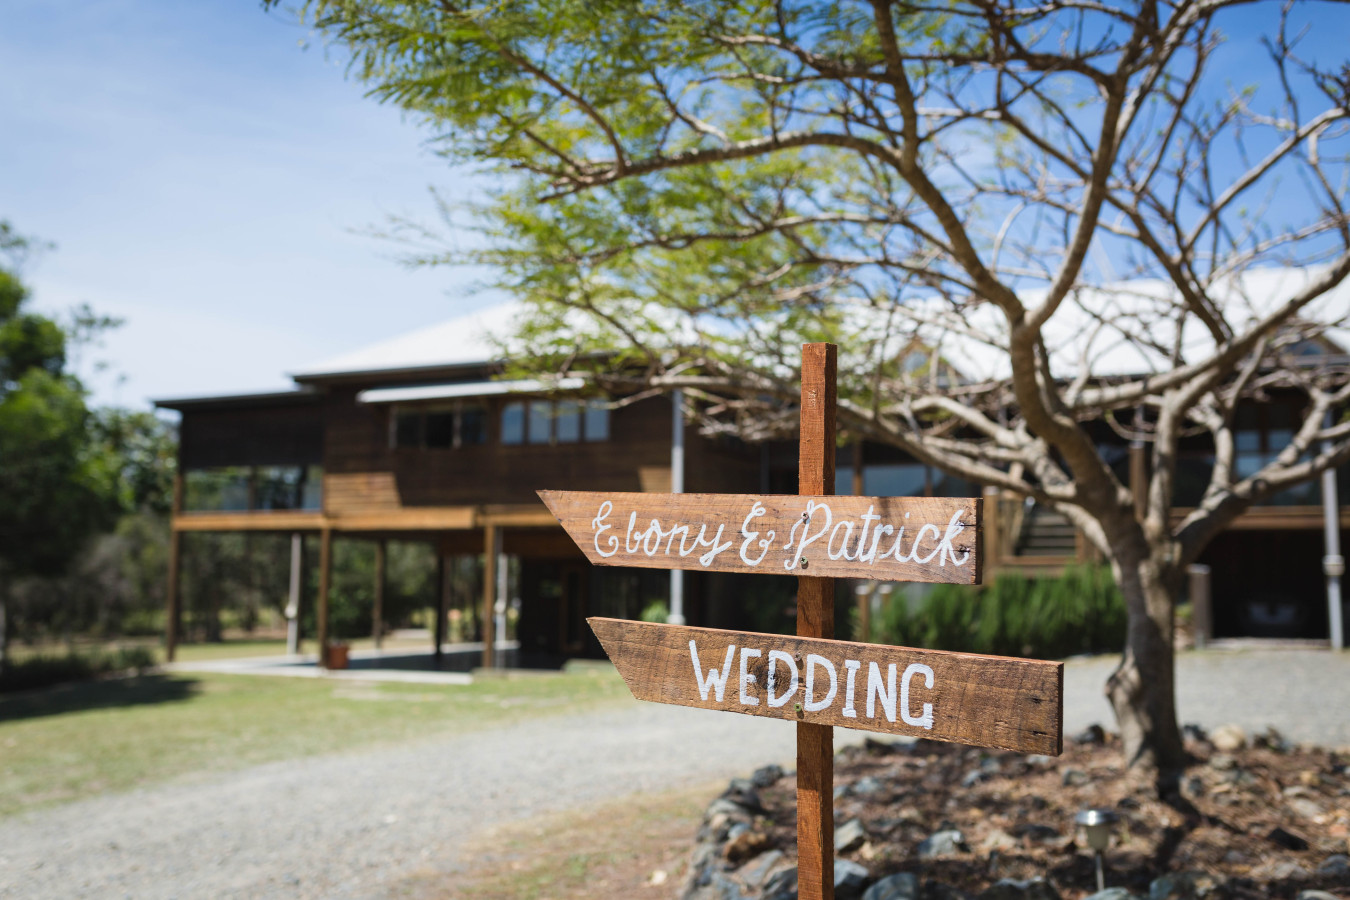 Wedding sign and house